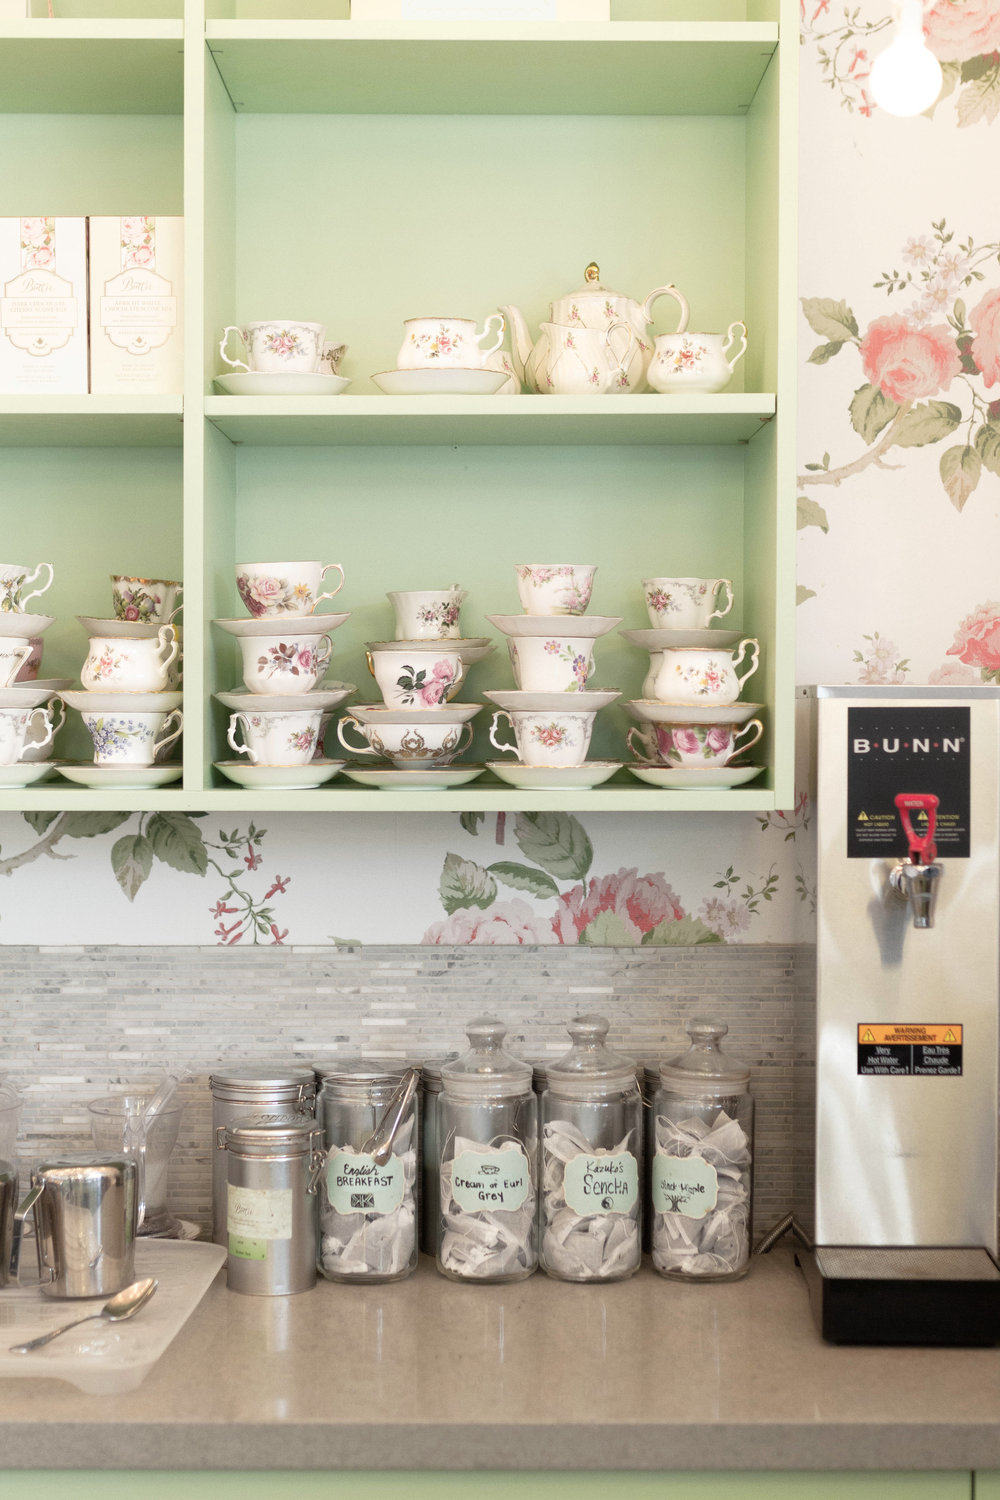 We highly recommend booking a high tea at Butter, served in these lovely teacups.